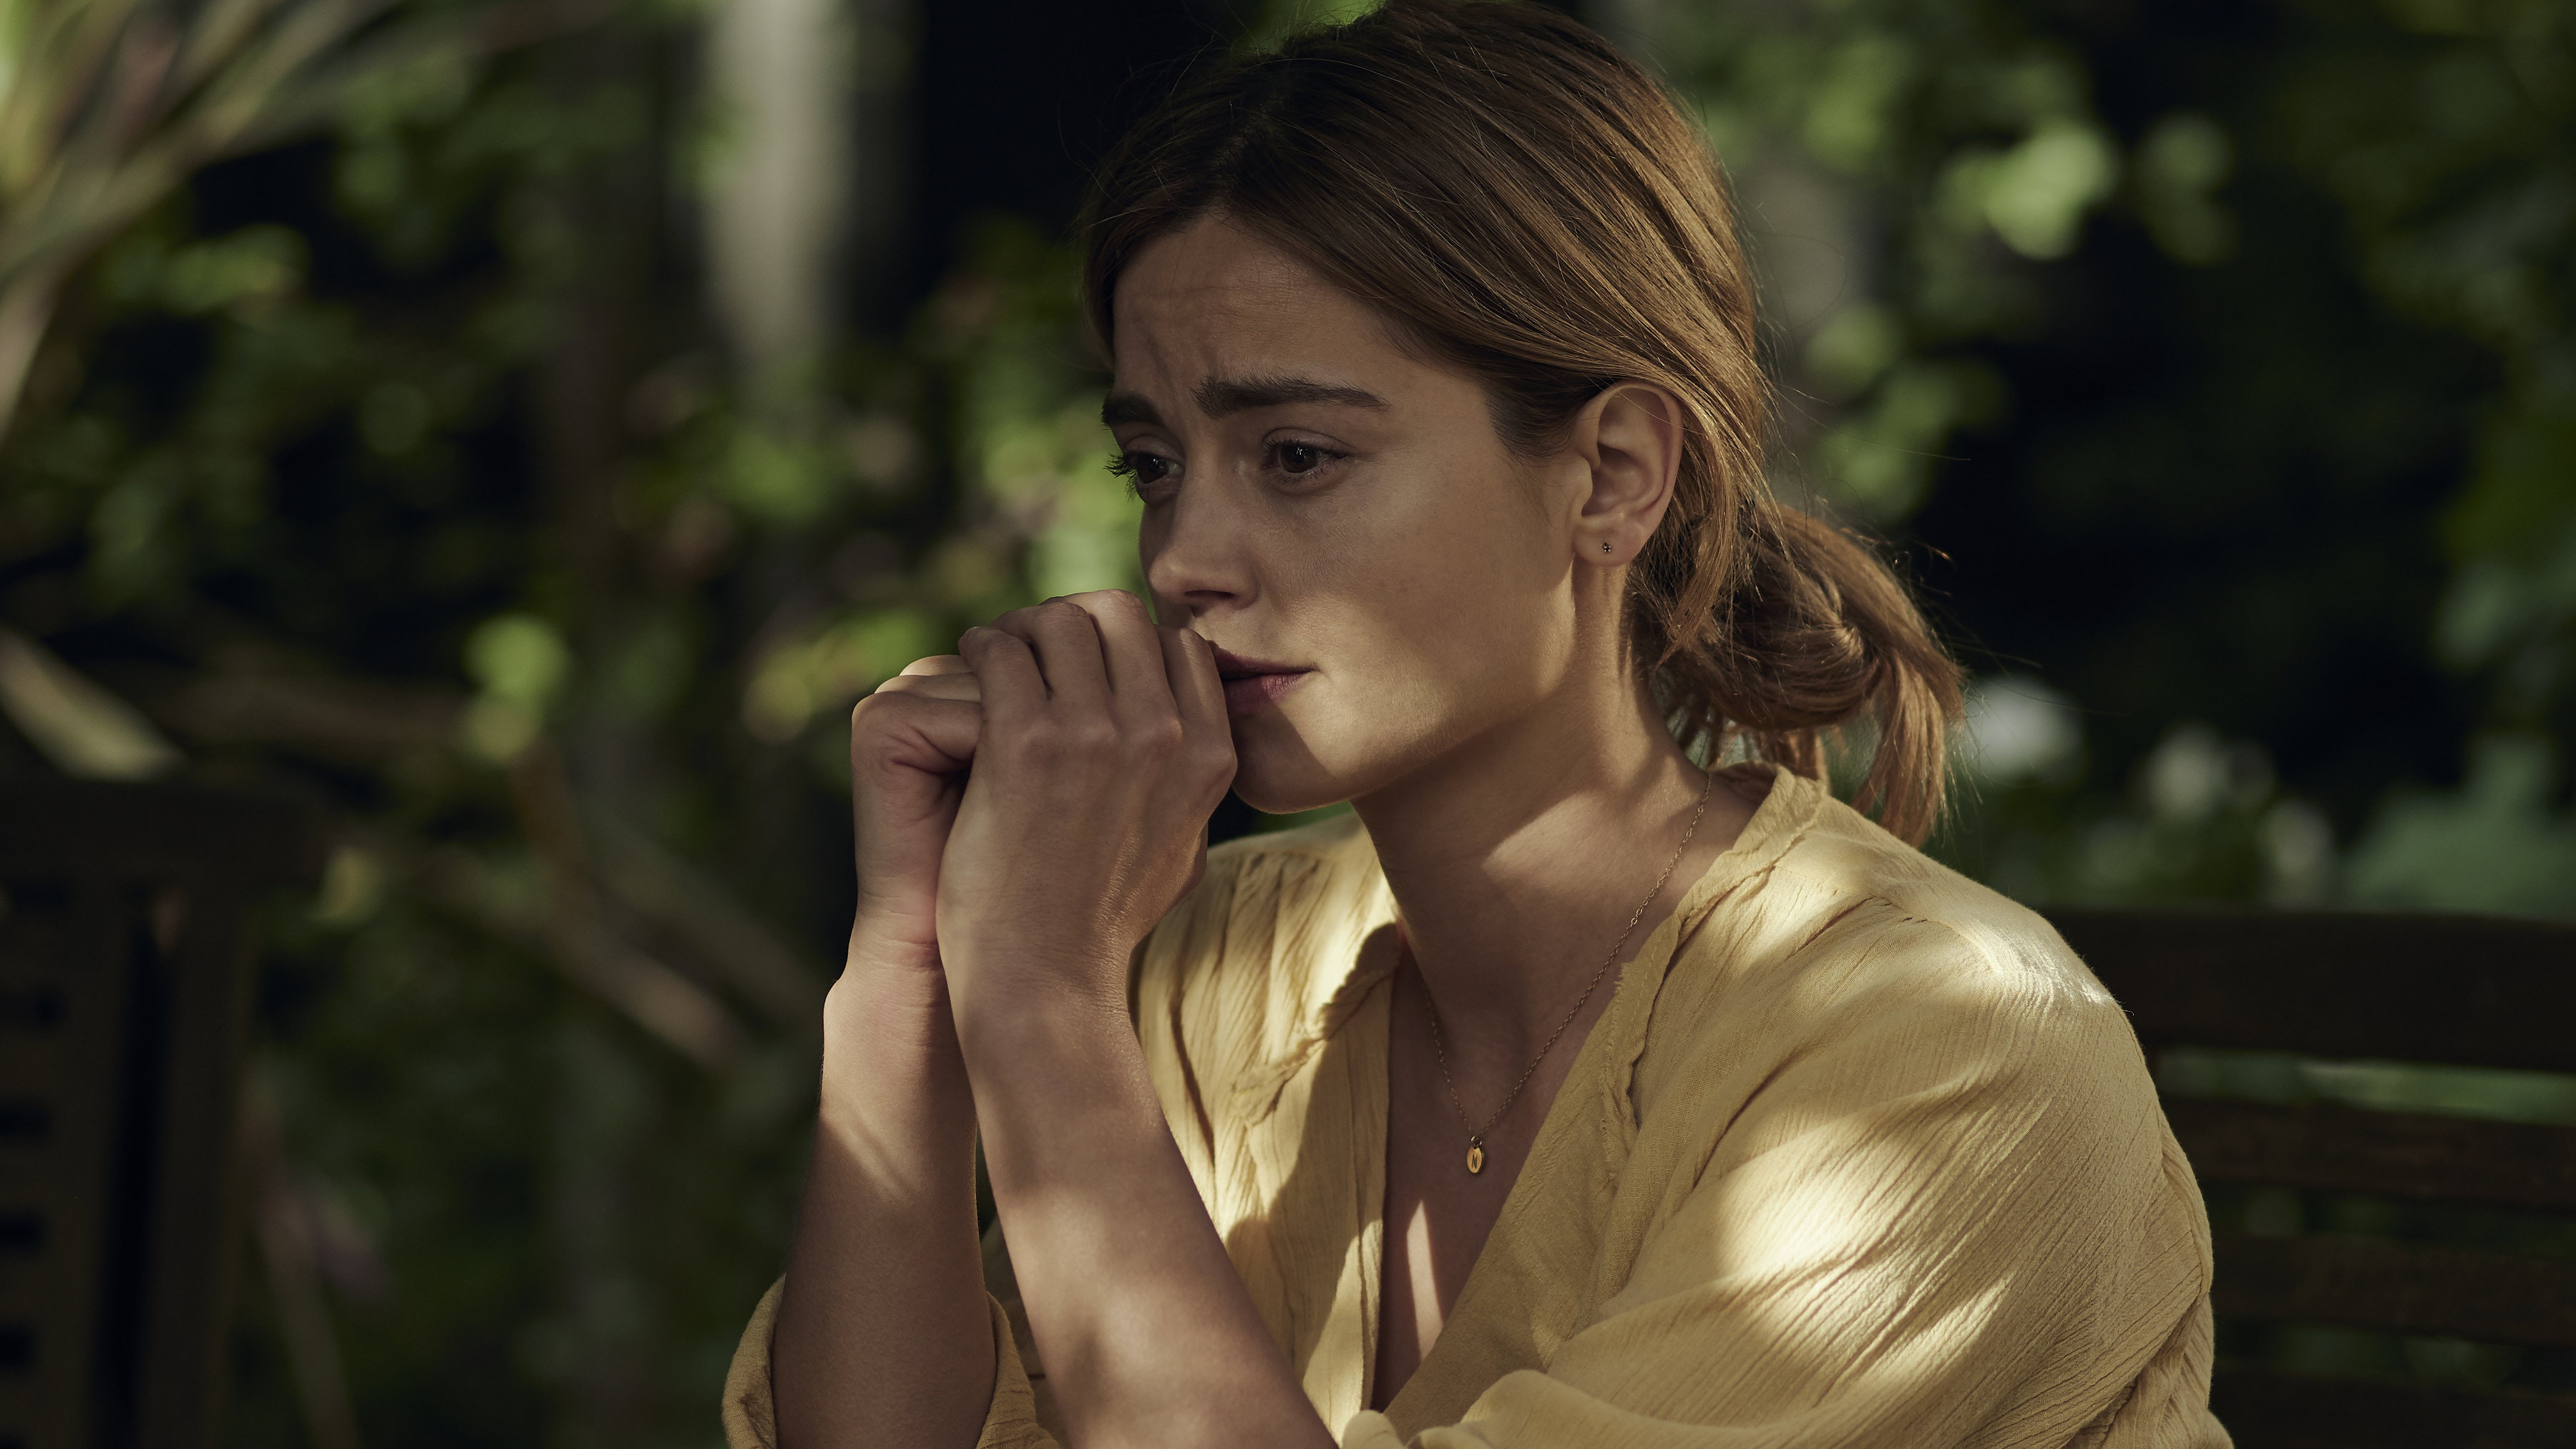 Jenna Coleman weeps in firstlook pictures from new drama